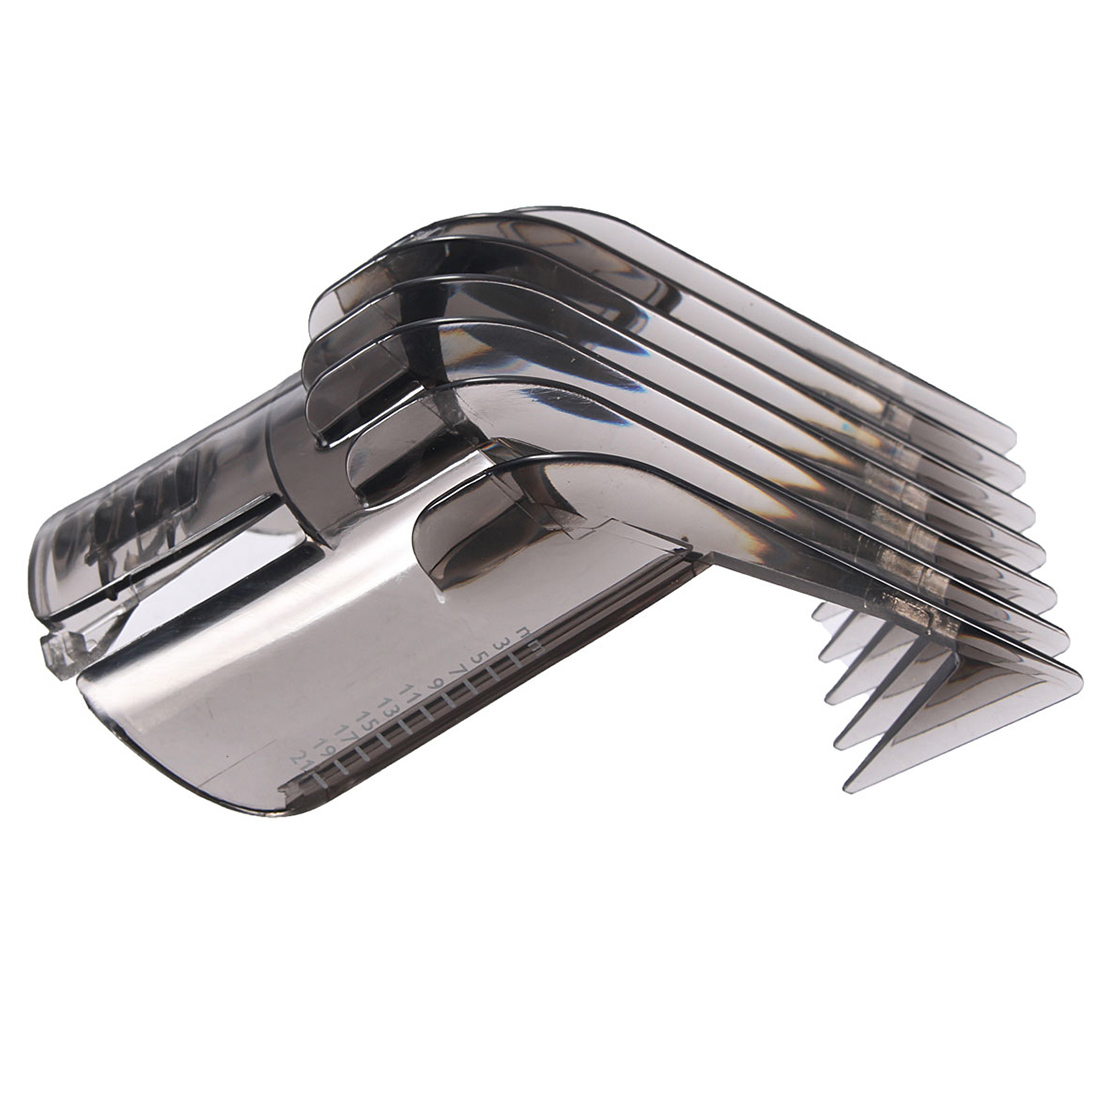 Hot Sale Hair Clippers Beard Trimmer Comb Attachment For Philips QC5130 / 05/15/20/25/35 3-21mm